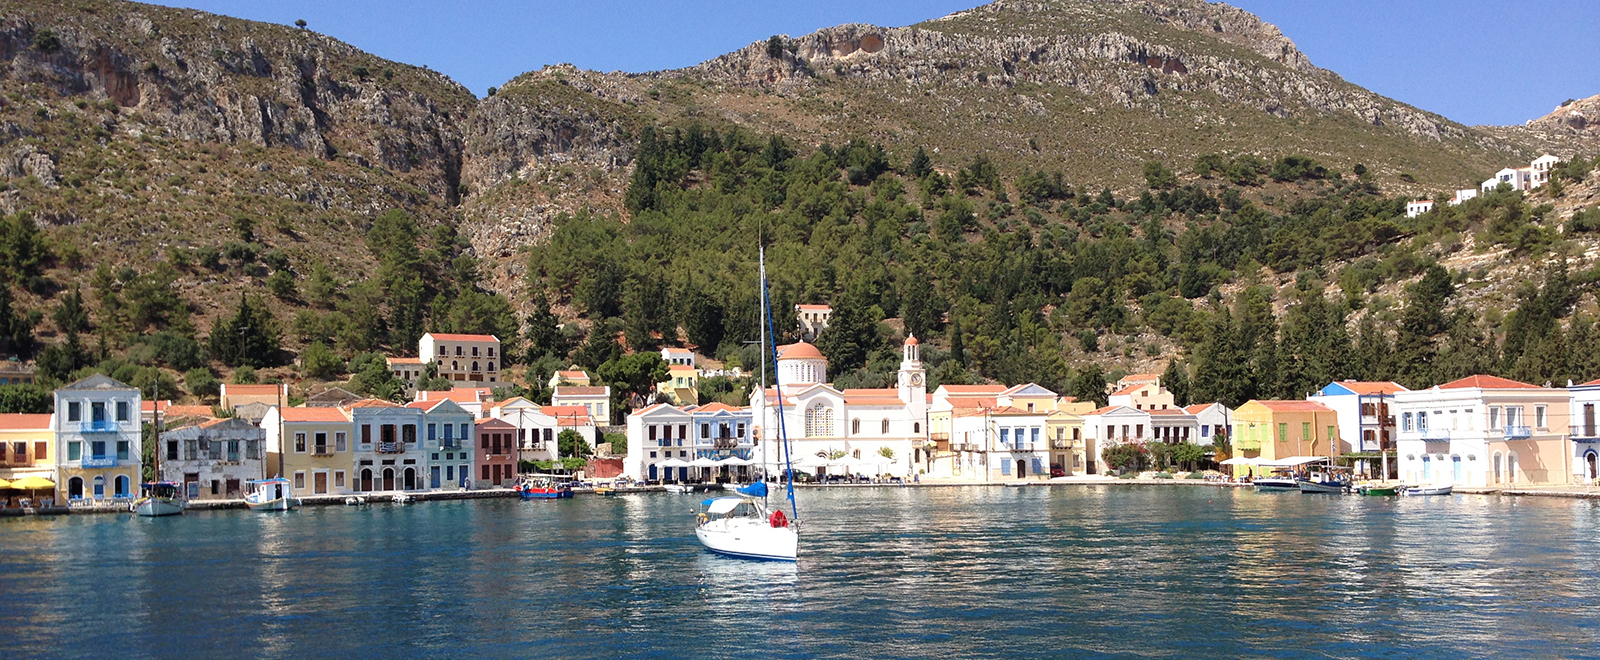 Greek Island Kastellorizo, also called Meis and Megisti